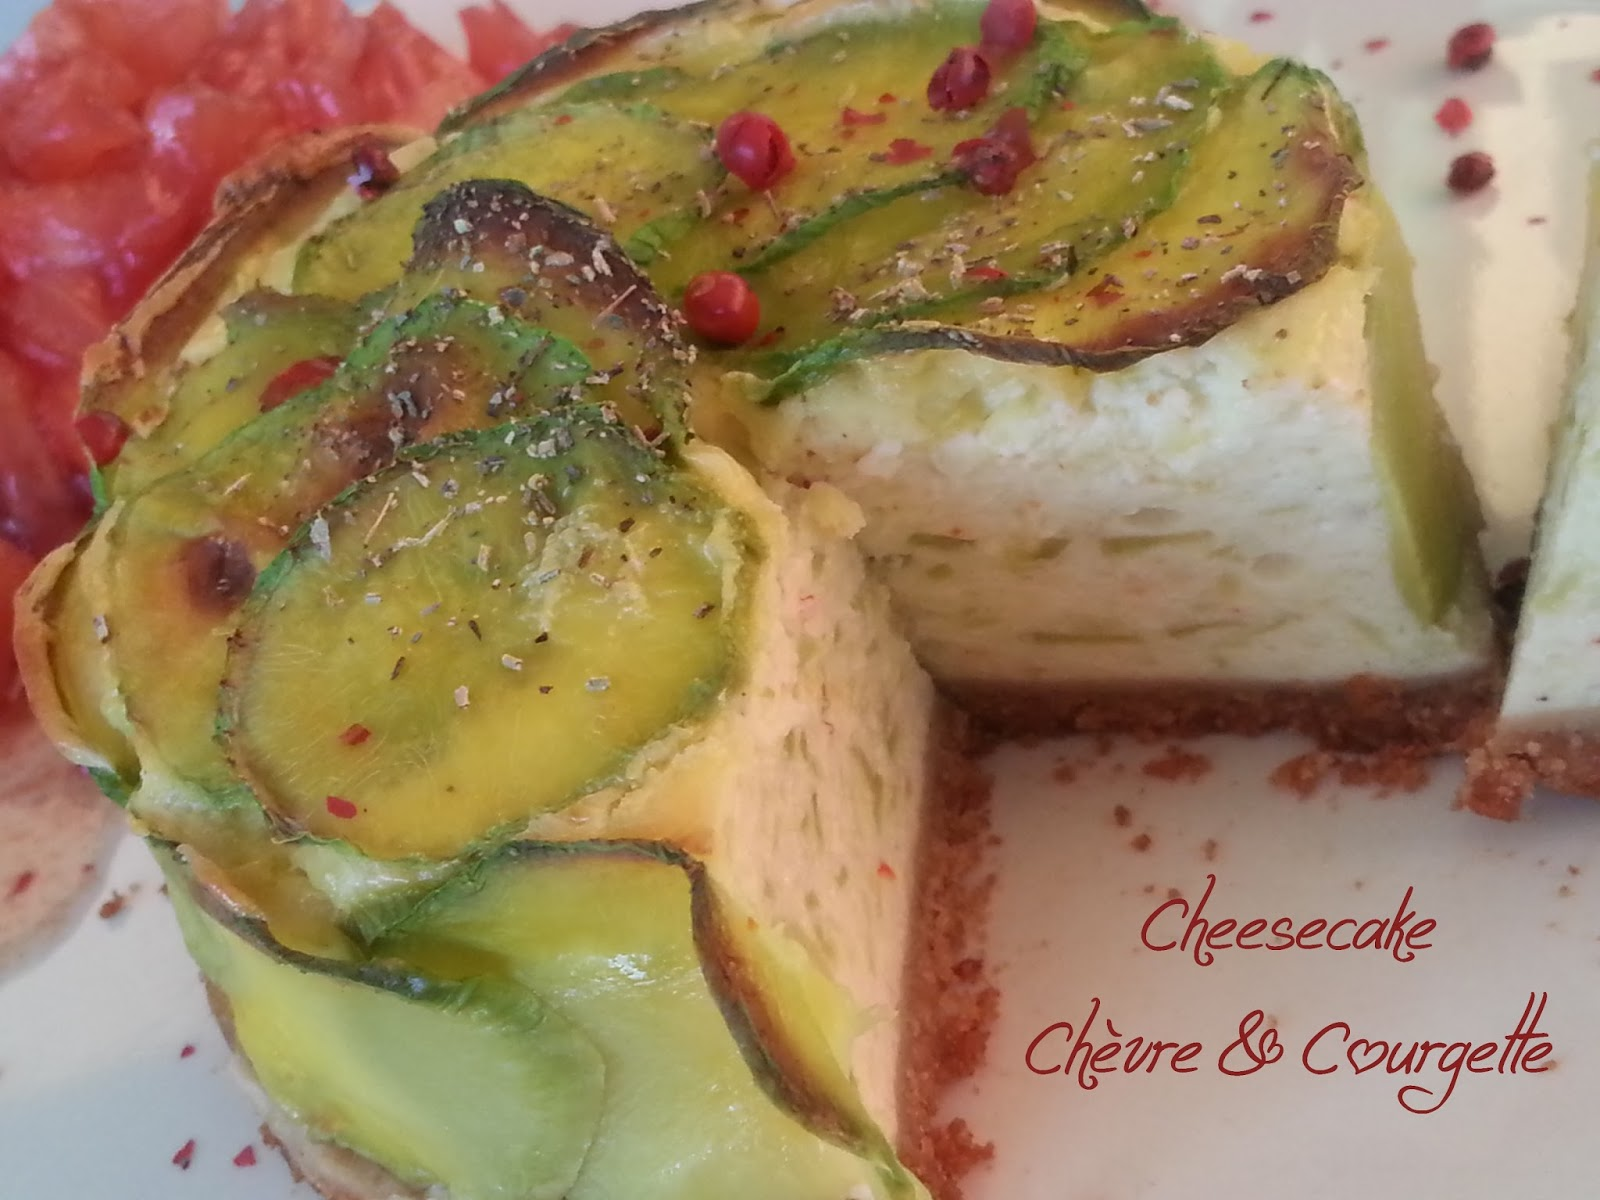 Cake Courgette Herbe Provence